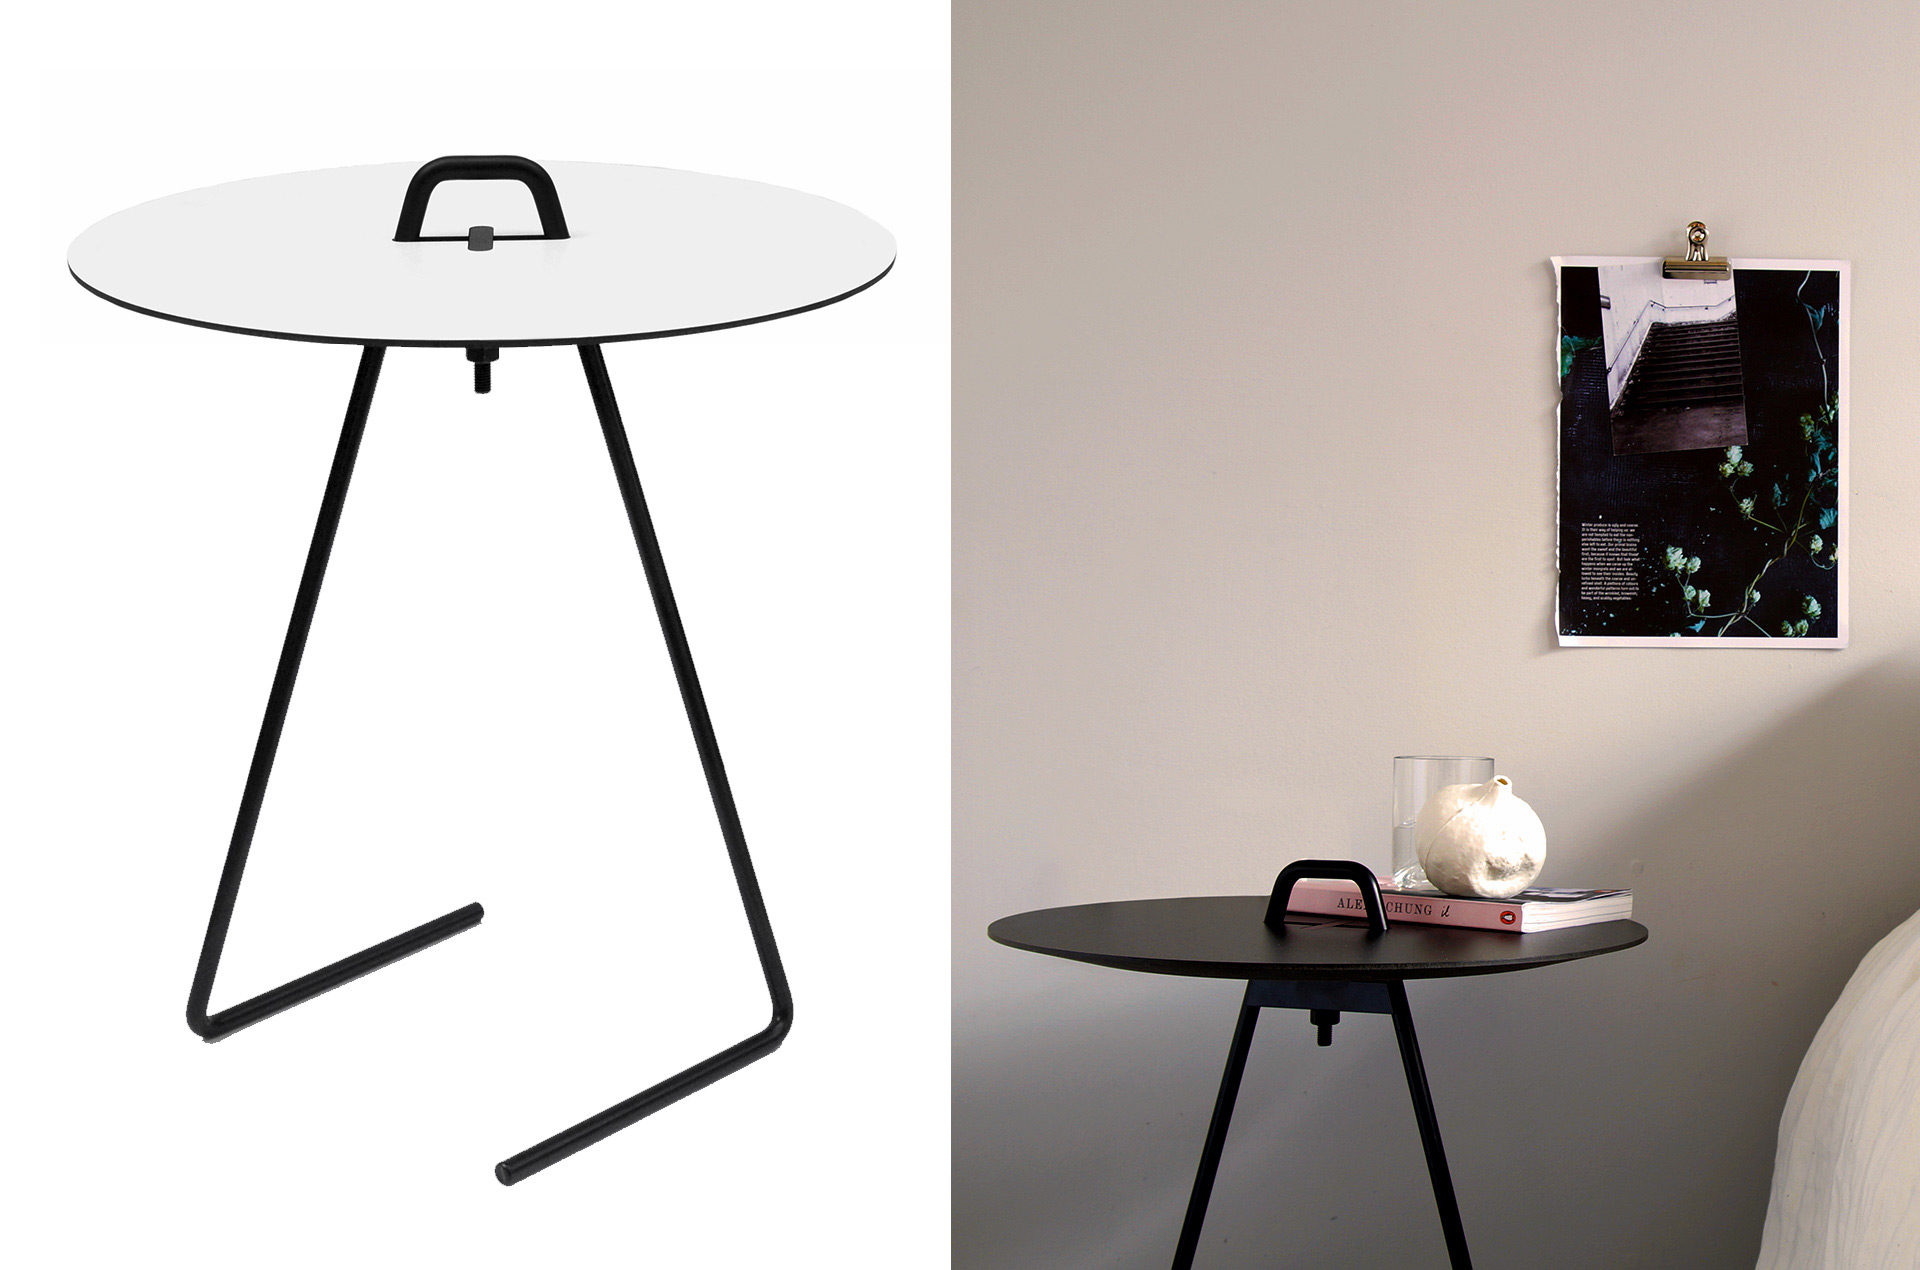 Table dappoint Side Table blanc noir by Moebe PARIDEO design durable 2